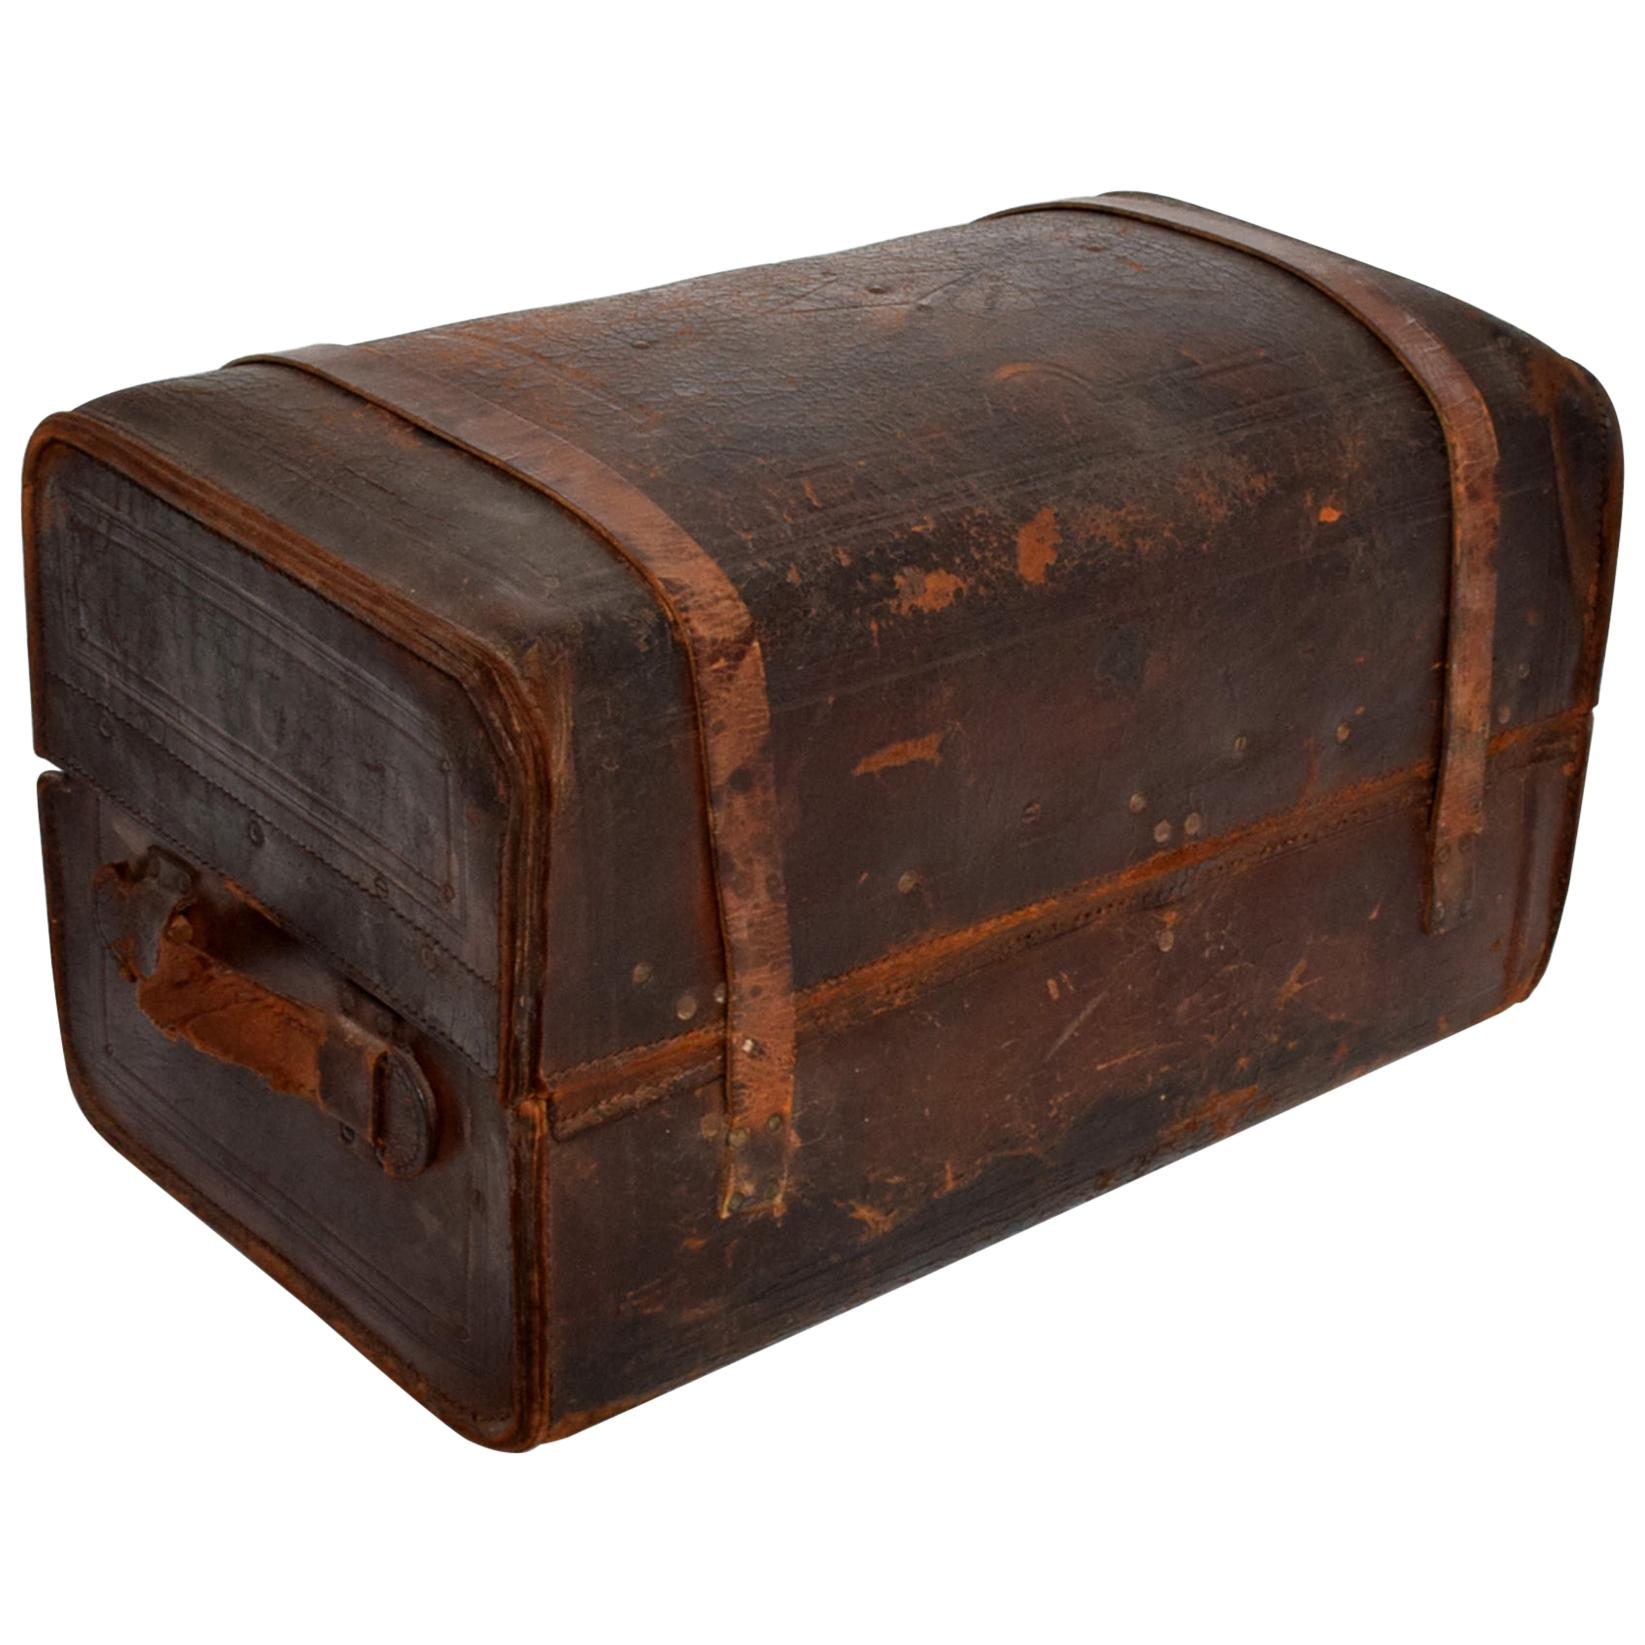 Antique Steamer Dome Trunk Distressed Leather Travel Case by S. Dennin, New York